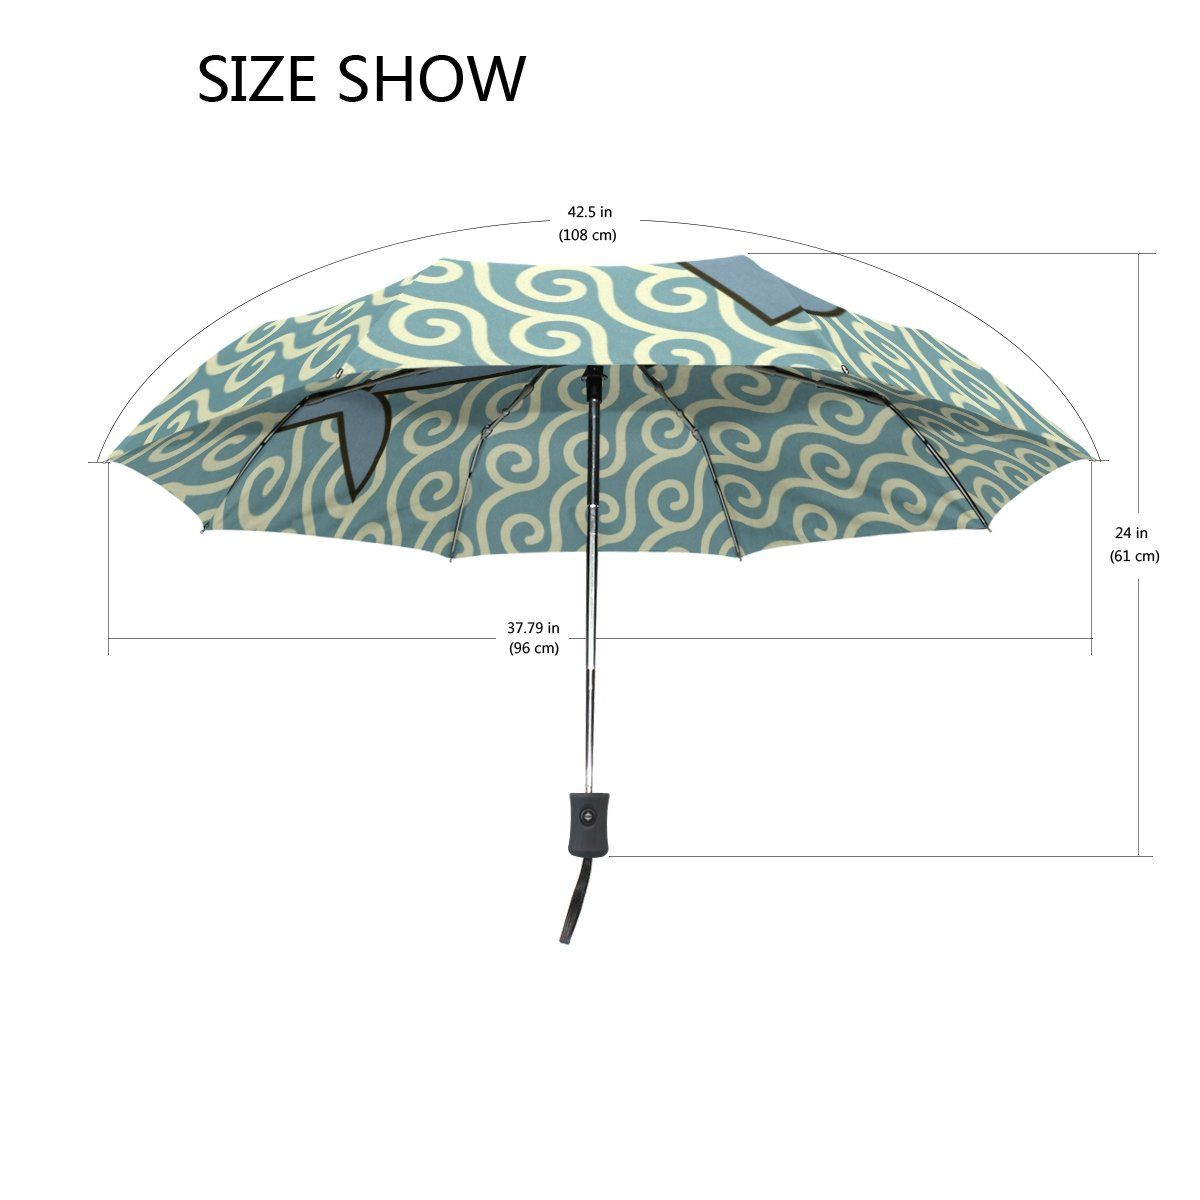 Cooper girl Shark Fish Windproof Travel Umbrella Auto Open Close Foldable Compact Portable Lightweight UV Umbrellas for Women Men Kid -- Continue to the product at the image link. (This is an affiliate link)